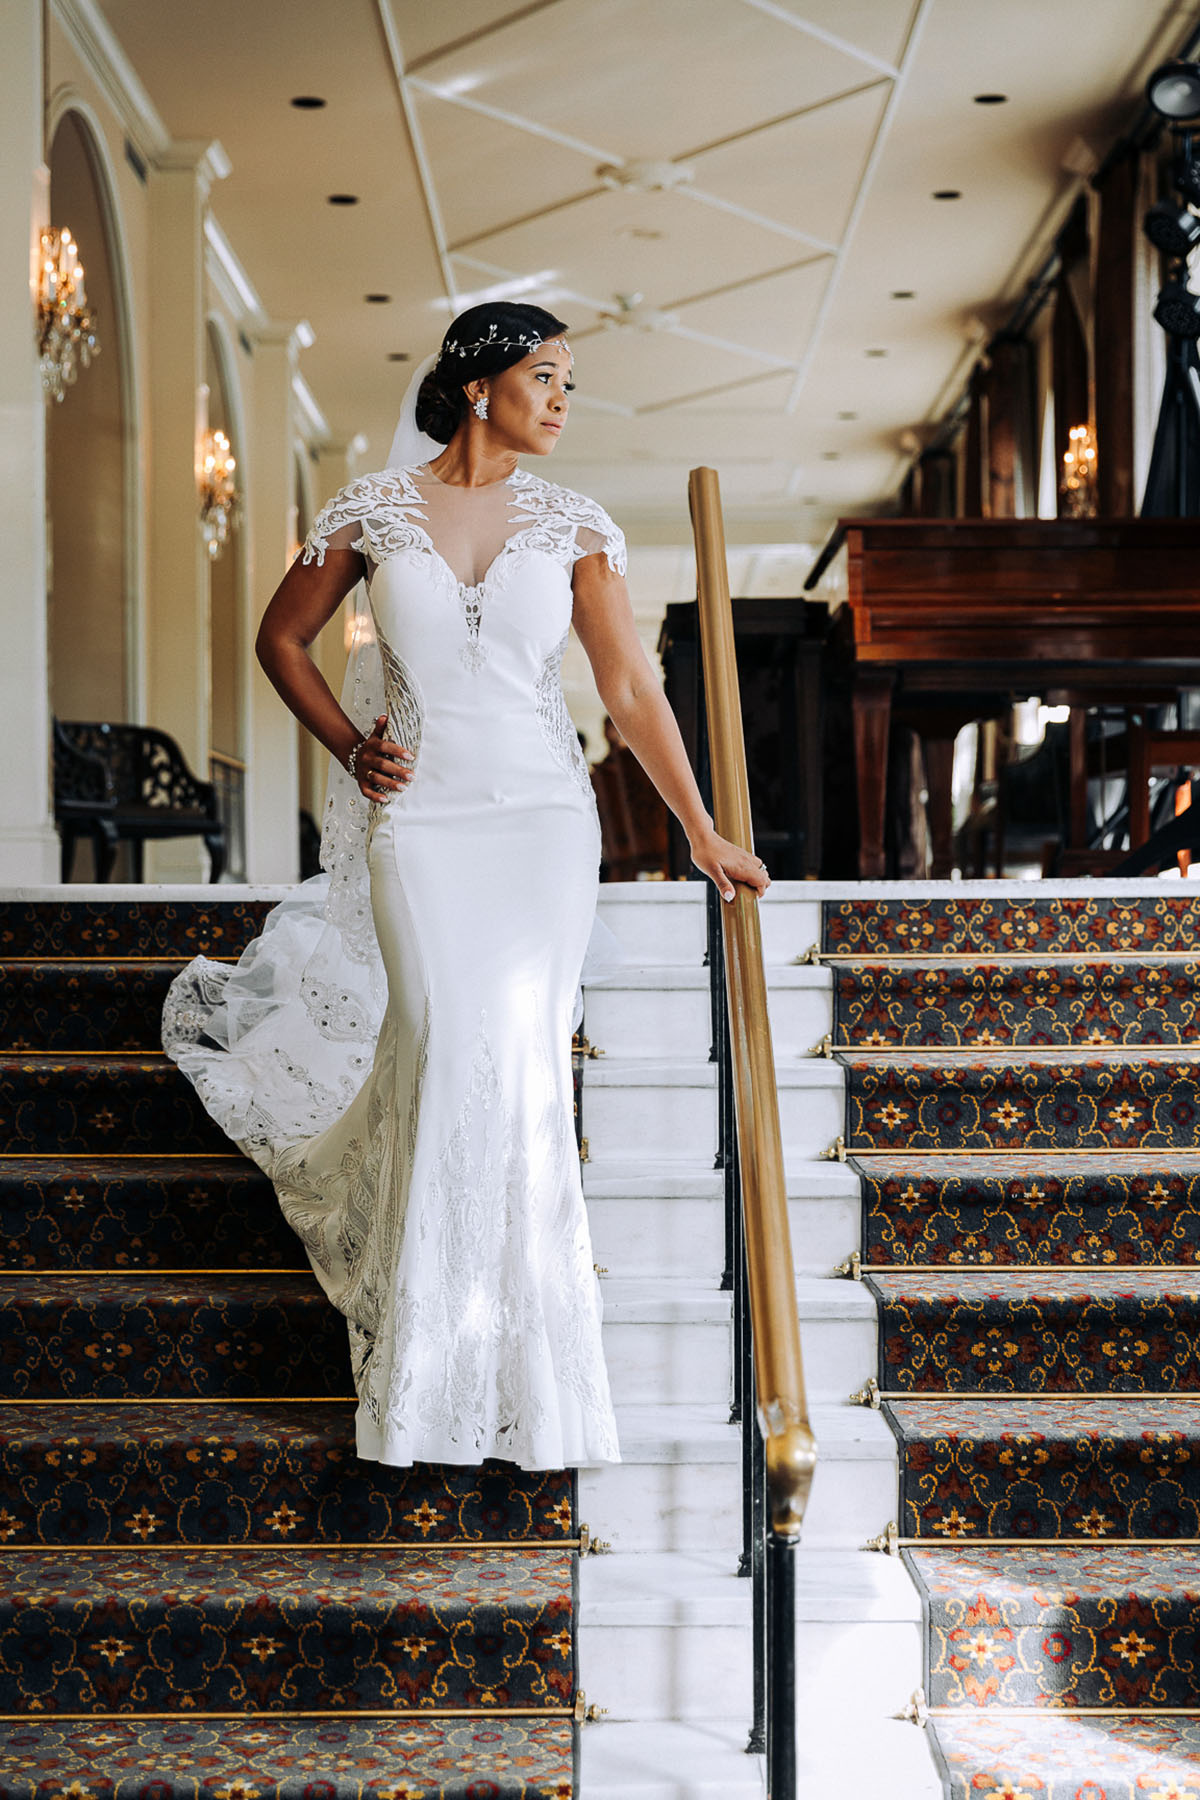 A bride poses for a photo in the lobby of the Omni Royal Orleans Hotel. Photo: Capture Studio Photography